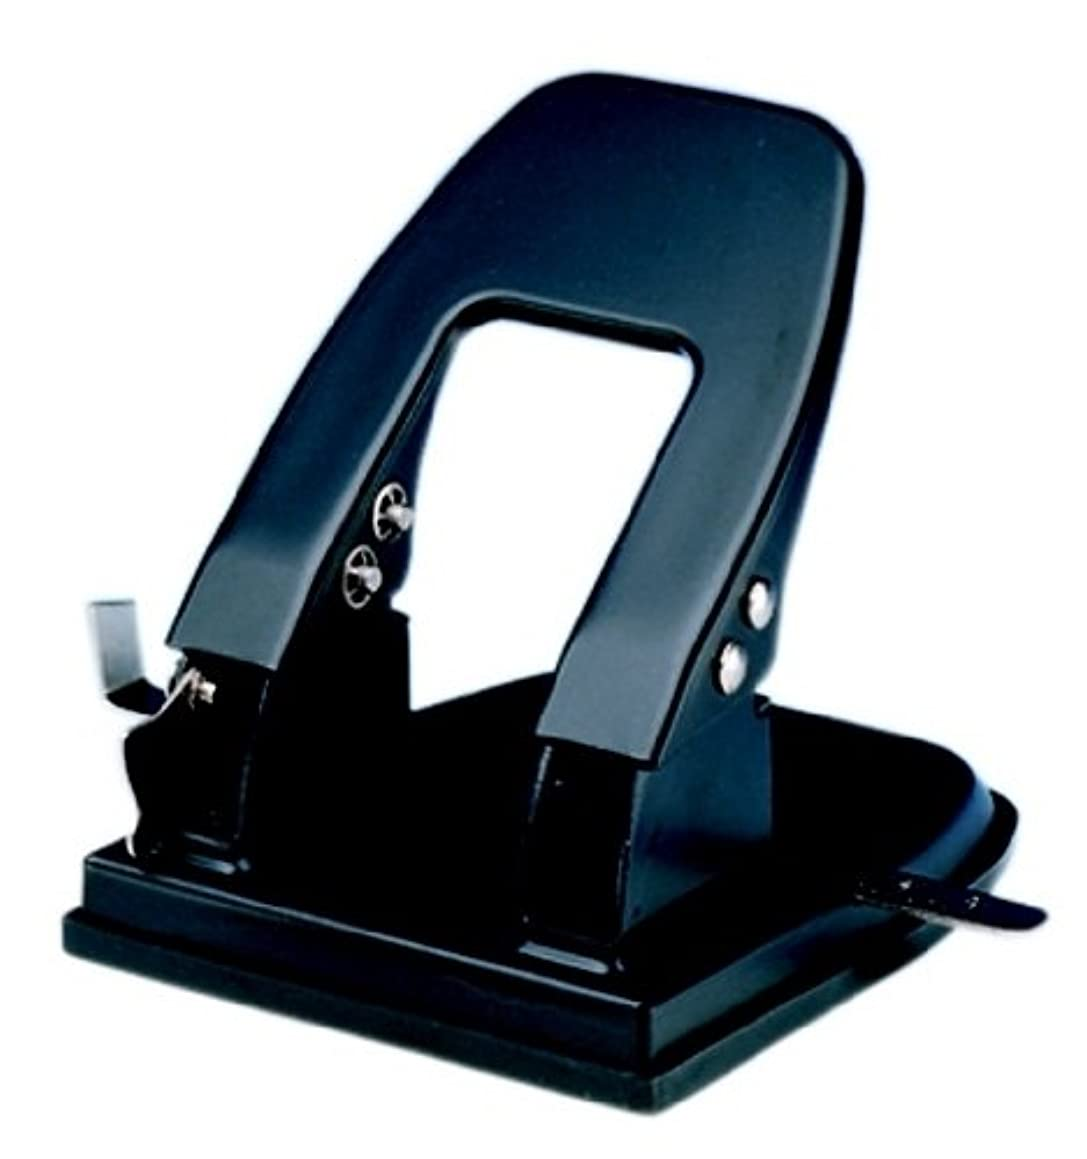 Charles Leonard 2 Hole Paper Punch, 3-1/8in Centers, 30 Sheet Capacity, Black,  (90228)